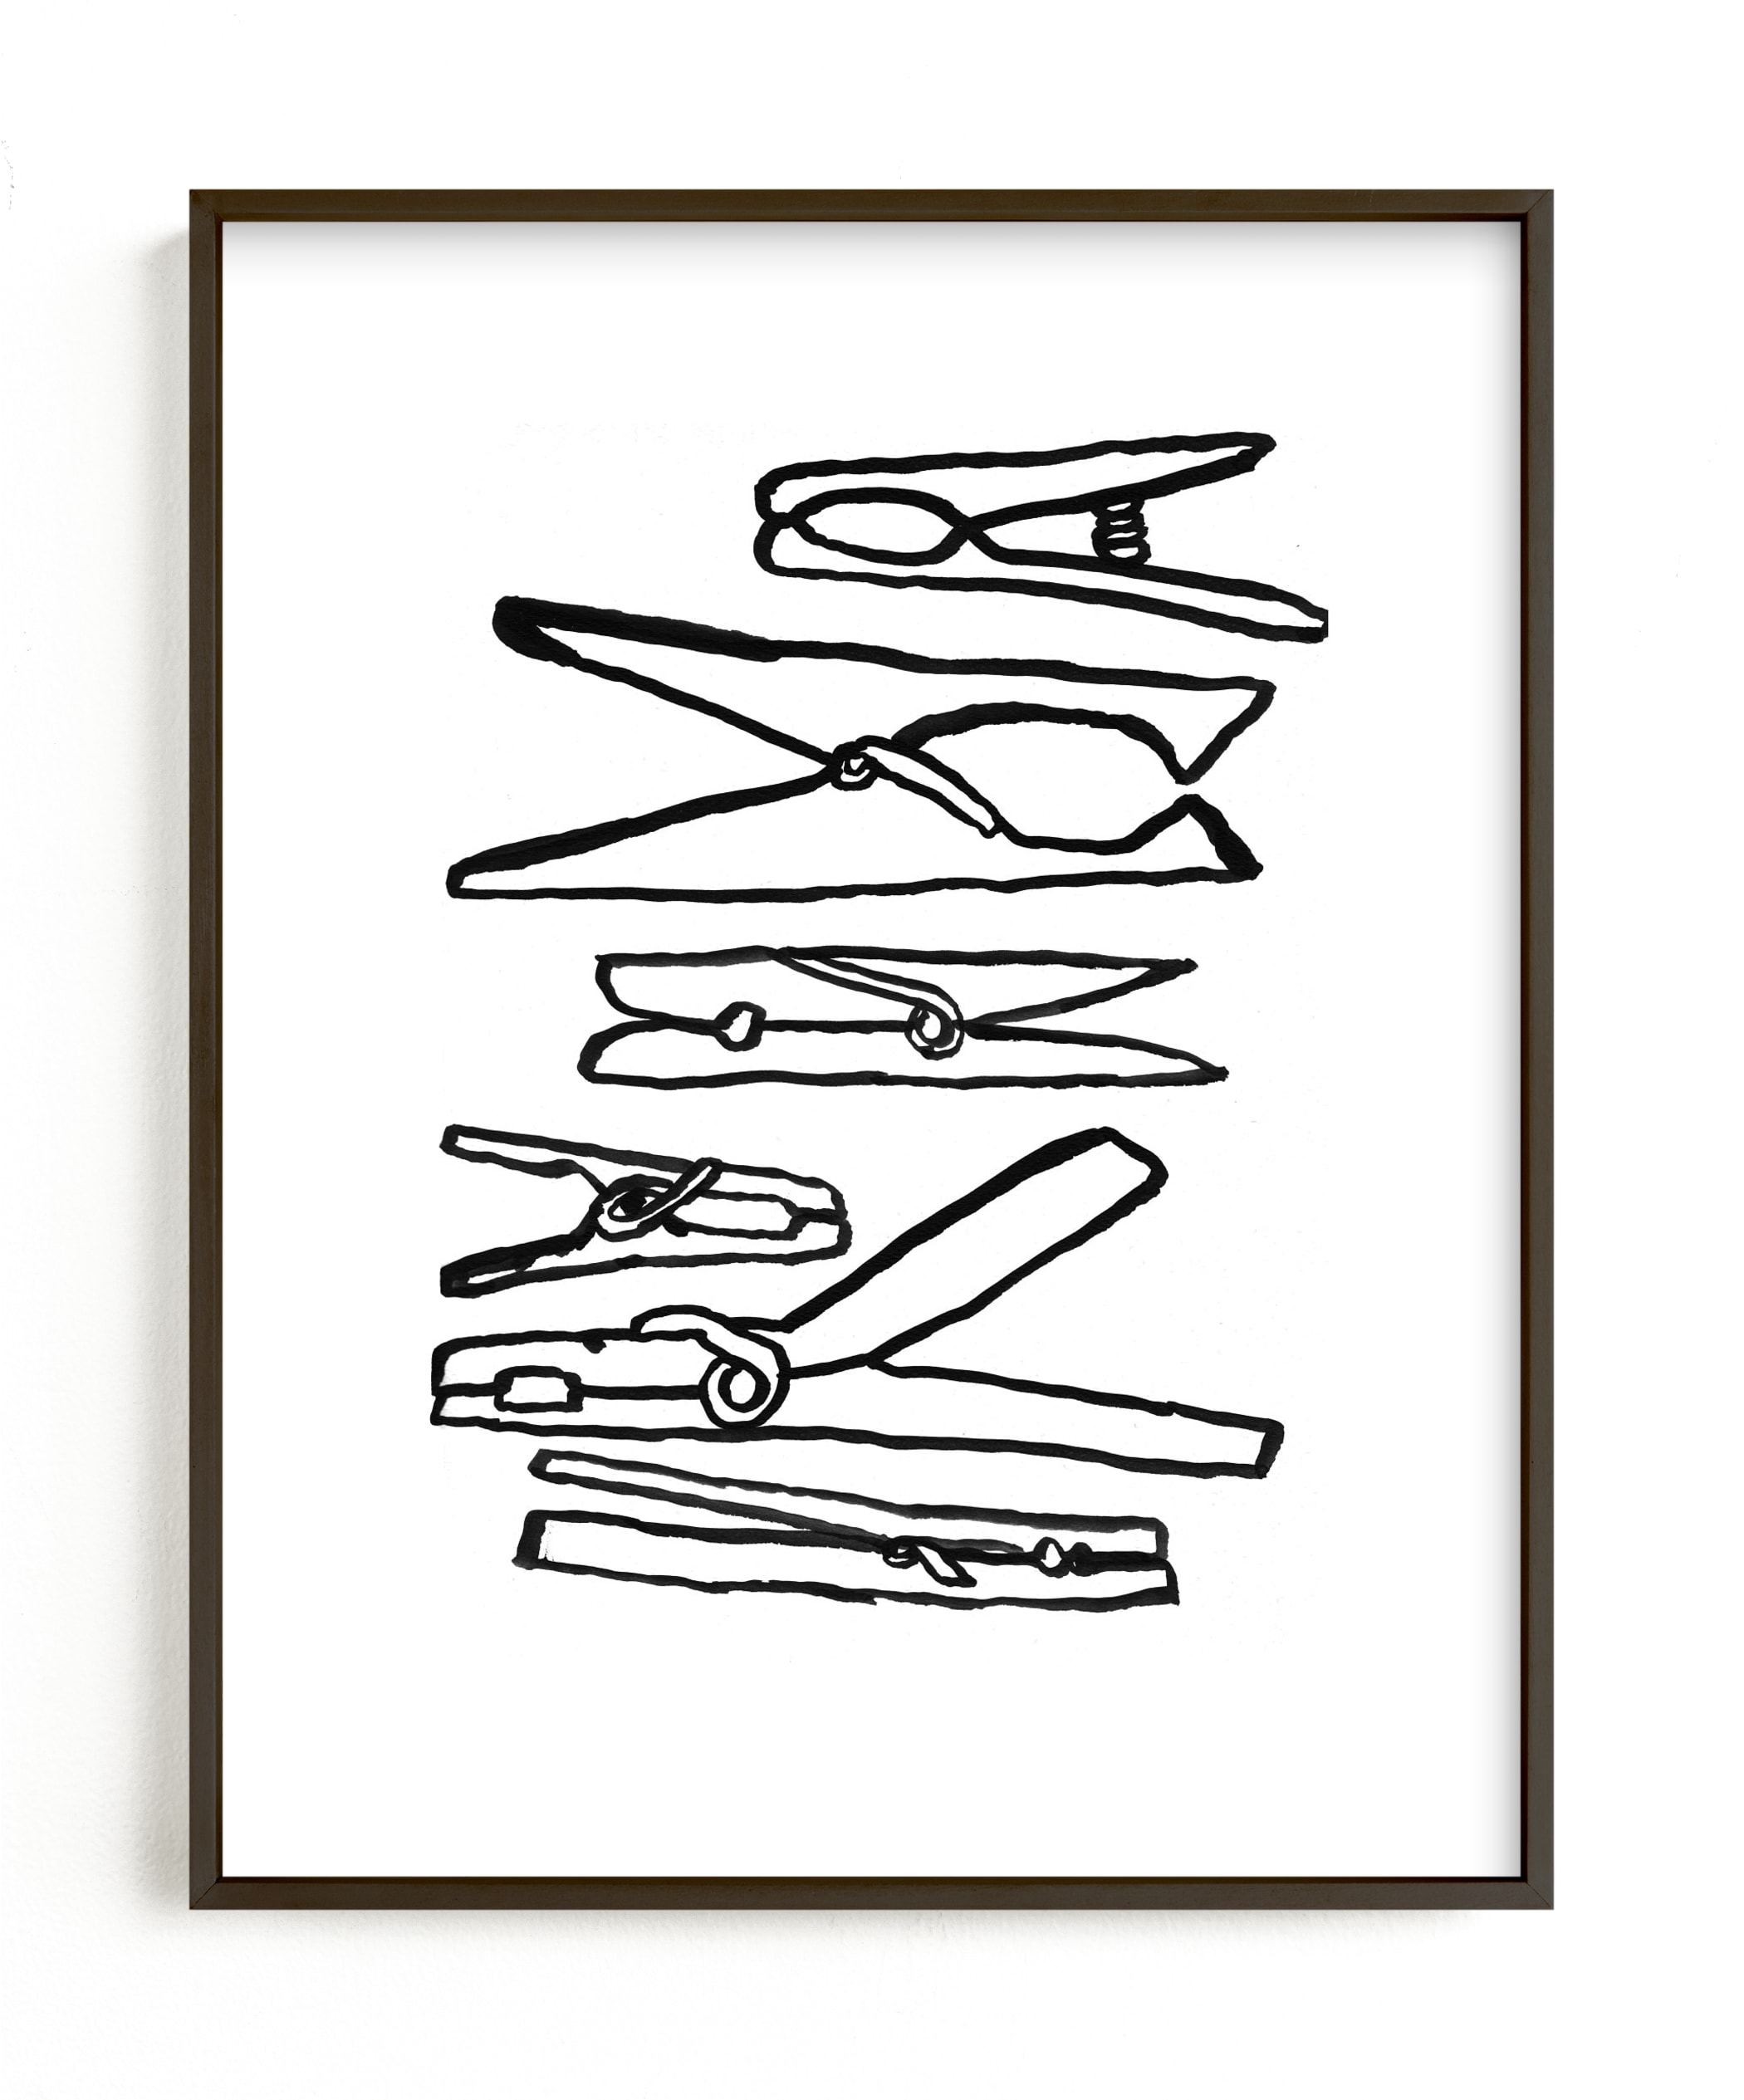 """Clothespins 2"" - Limited Edition Art Print by Elliot Stokes in beautiful frame options and a variety of sizes."